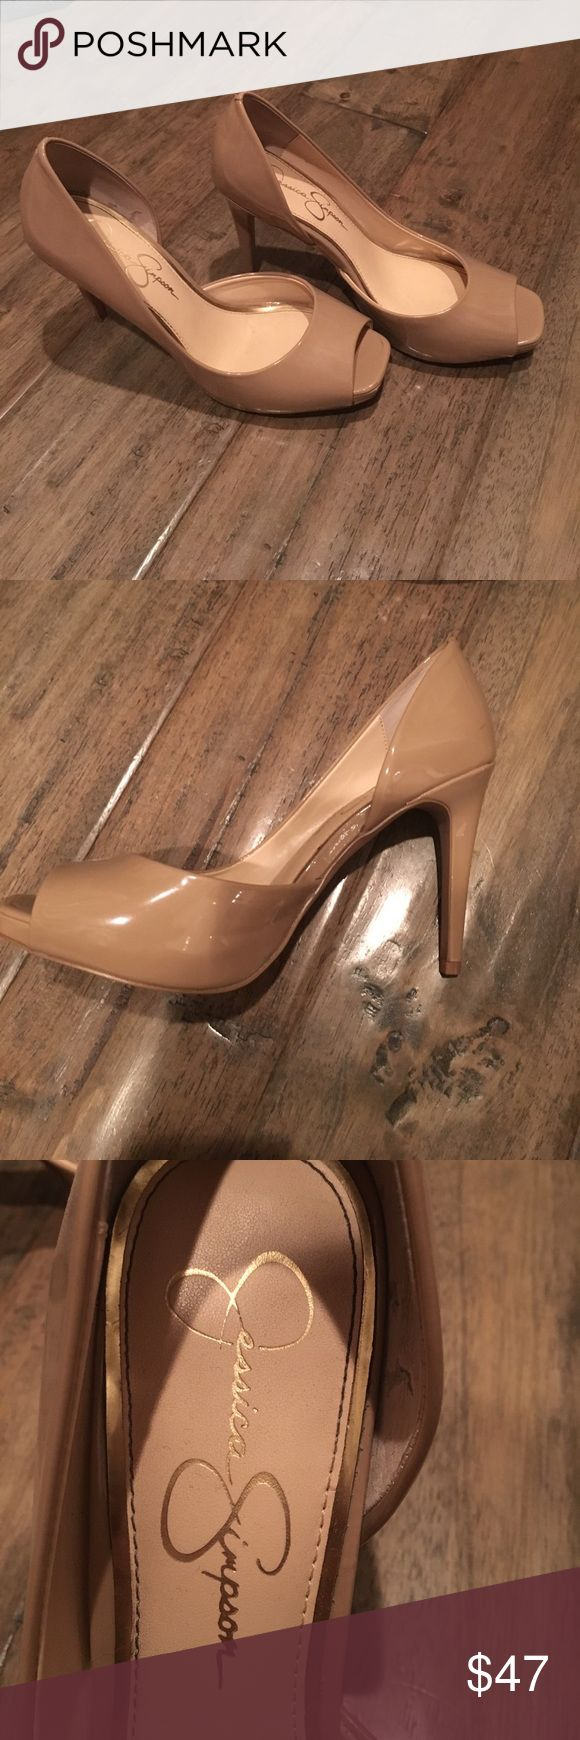 """Jessica Simpson Nude Peep-Toe Heels Worn one time to a party and have a little wear mark inside the right shoe (photo above). Heel height is a little bit over 4 inches (4.25""""). These look so cute with a party dress for going out! let me know if you have any questions. ALL MY ITEMS COME FROM A SMOKE FREE HOME! Jessica Simpson Shoes Heels"""